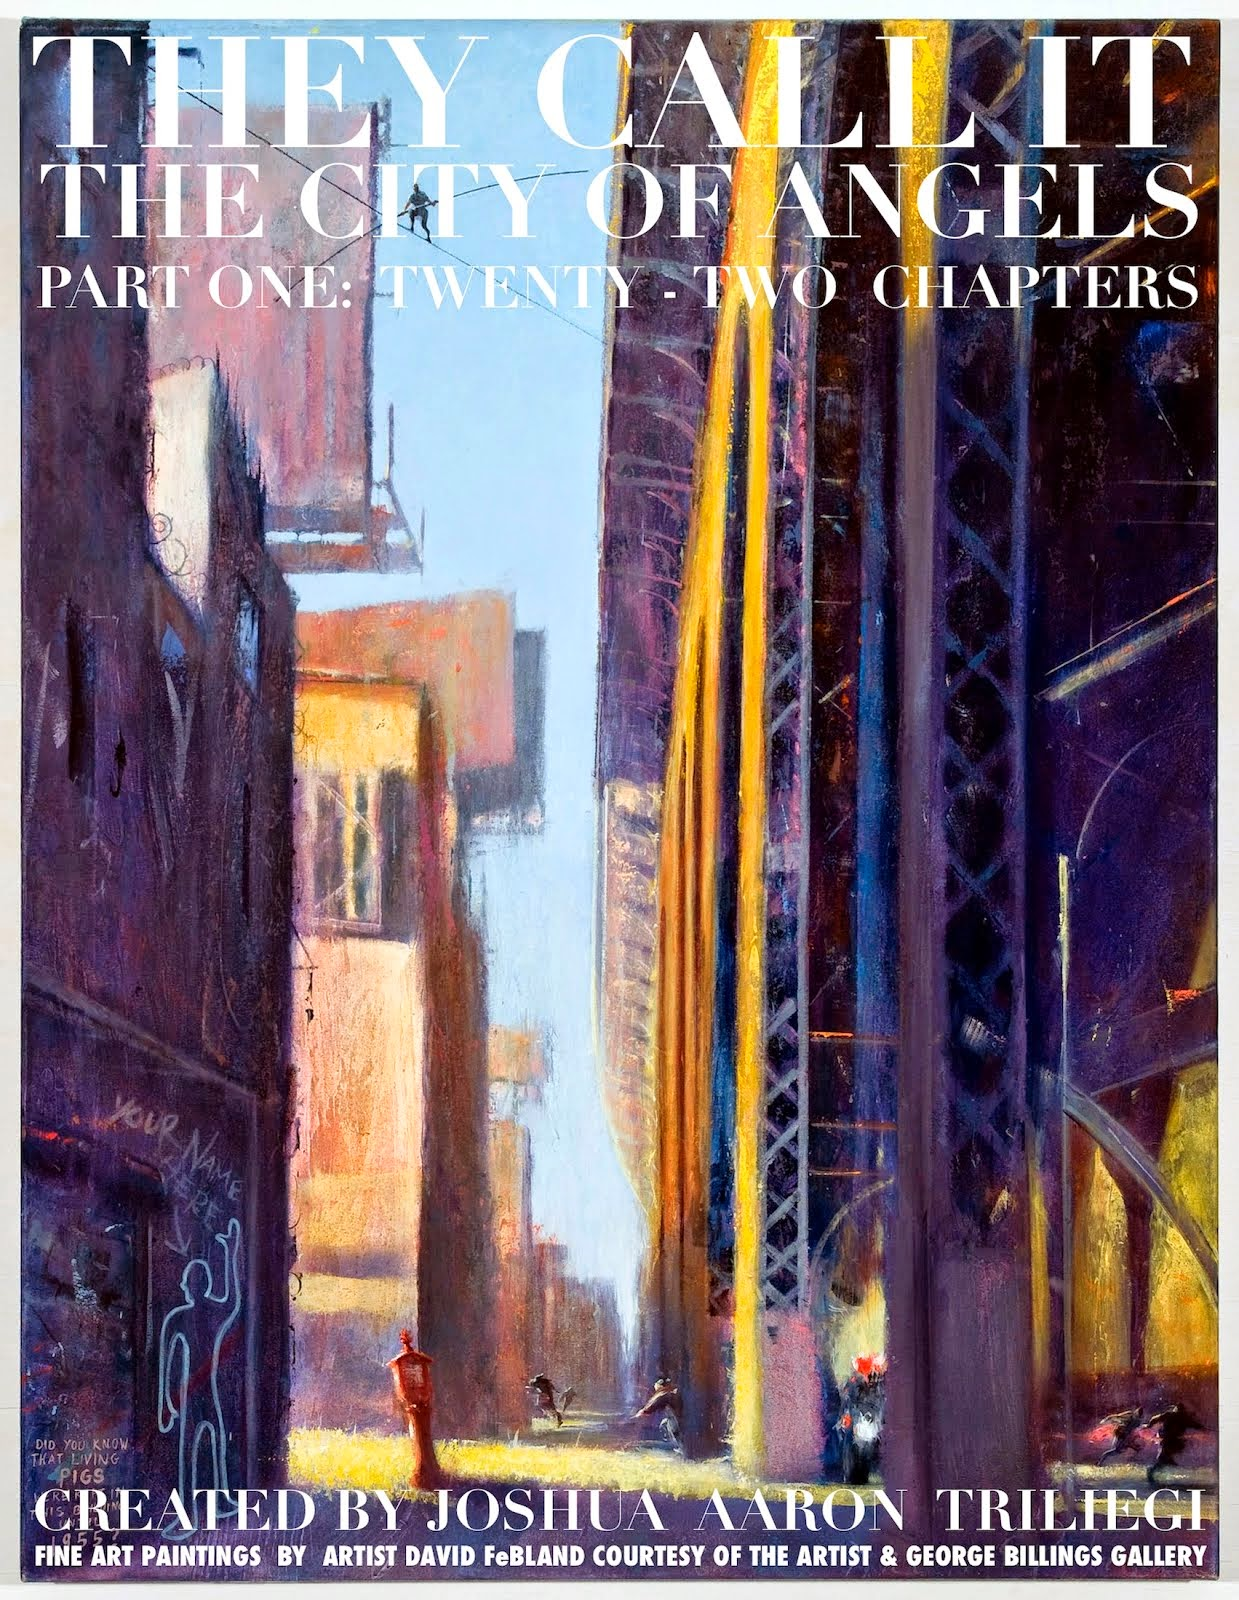 Part One: They Call It The City Of Angels Fiction